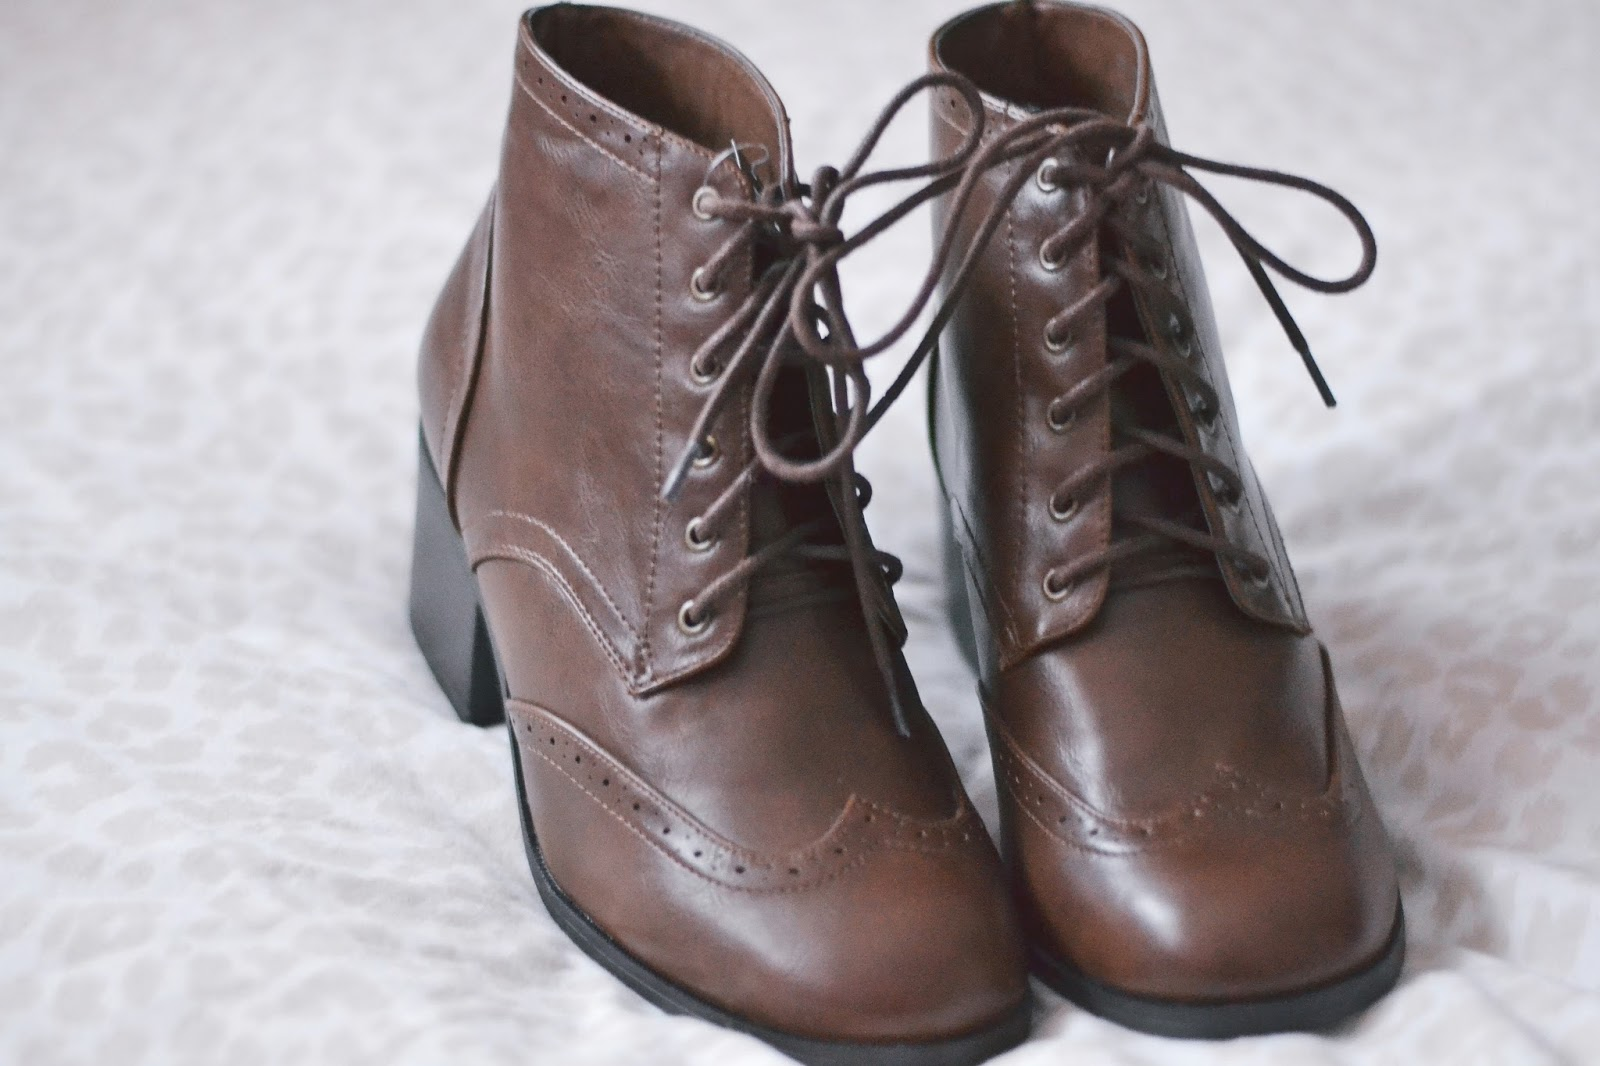 new look tan lace up boots